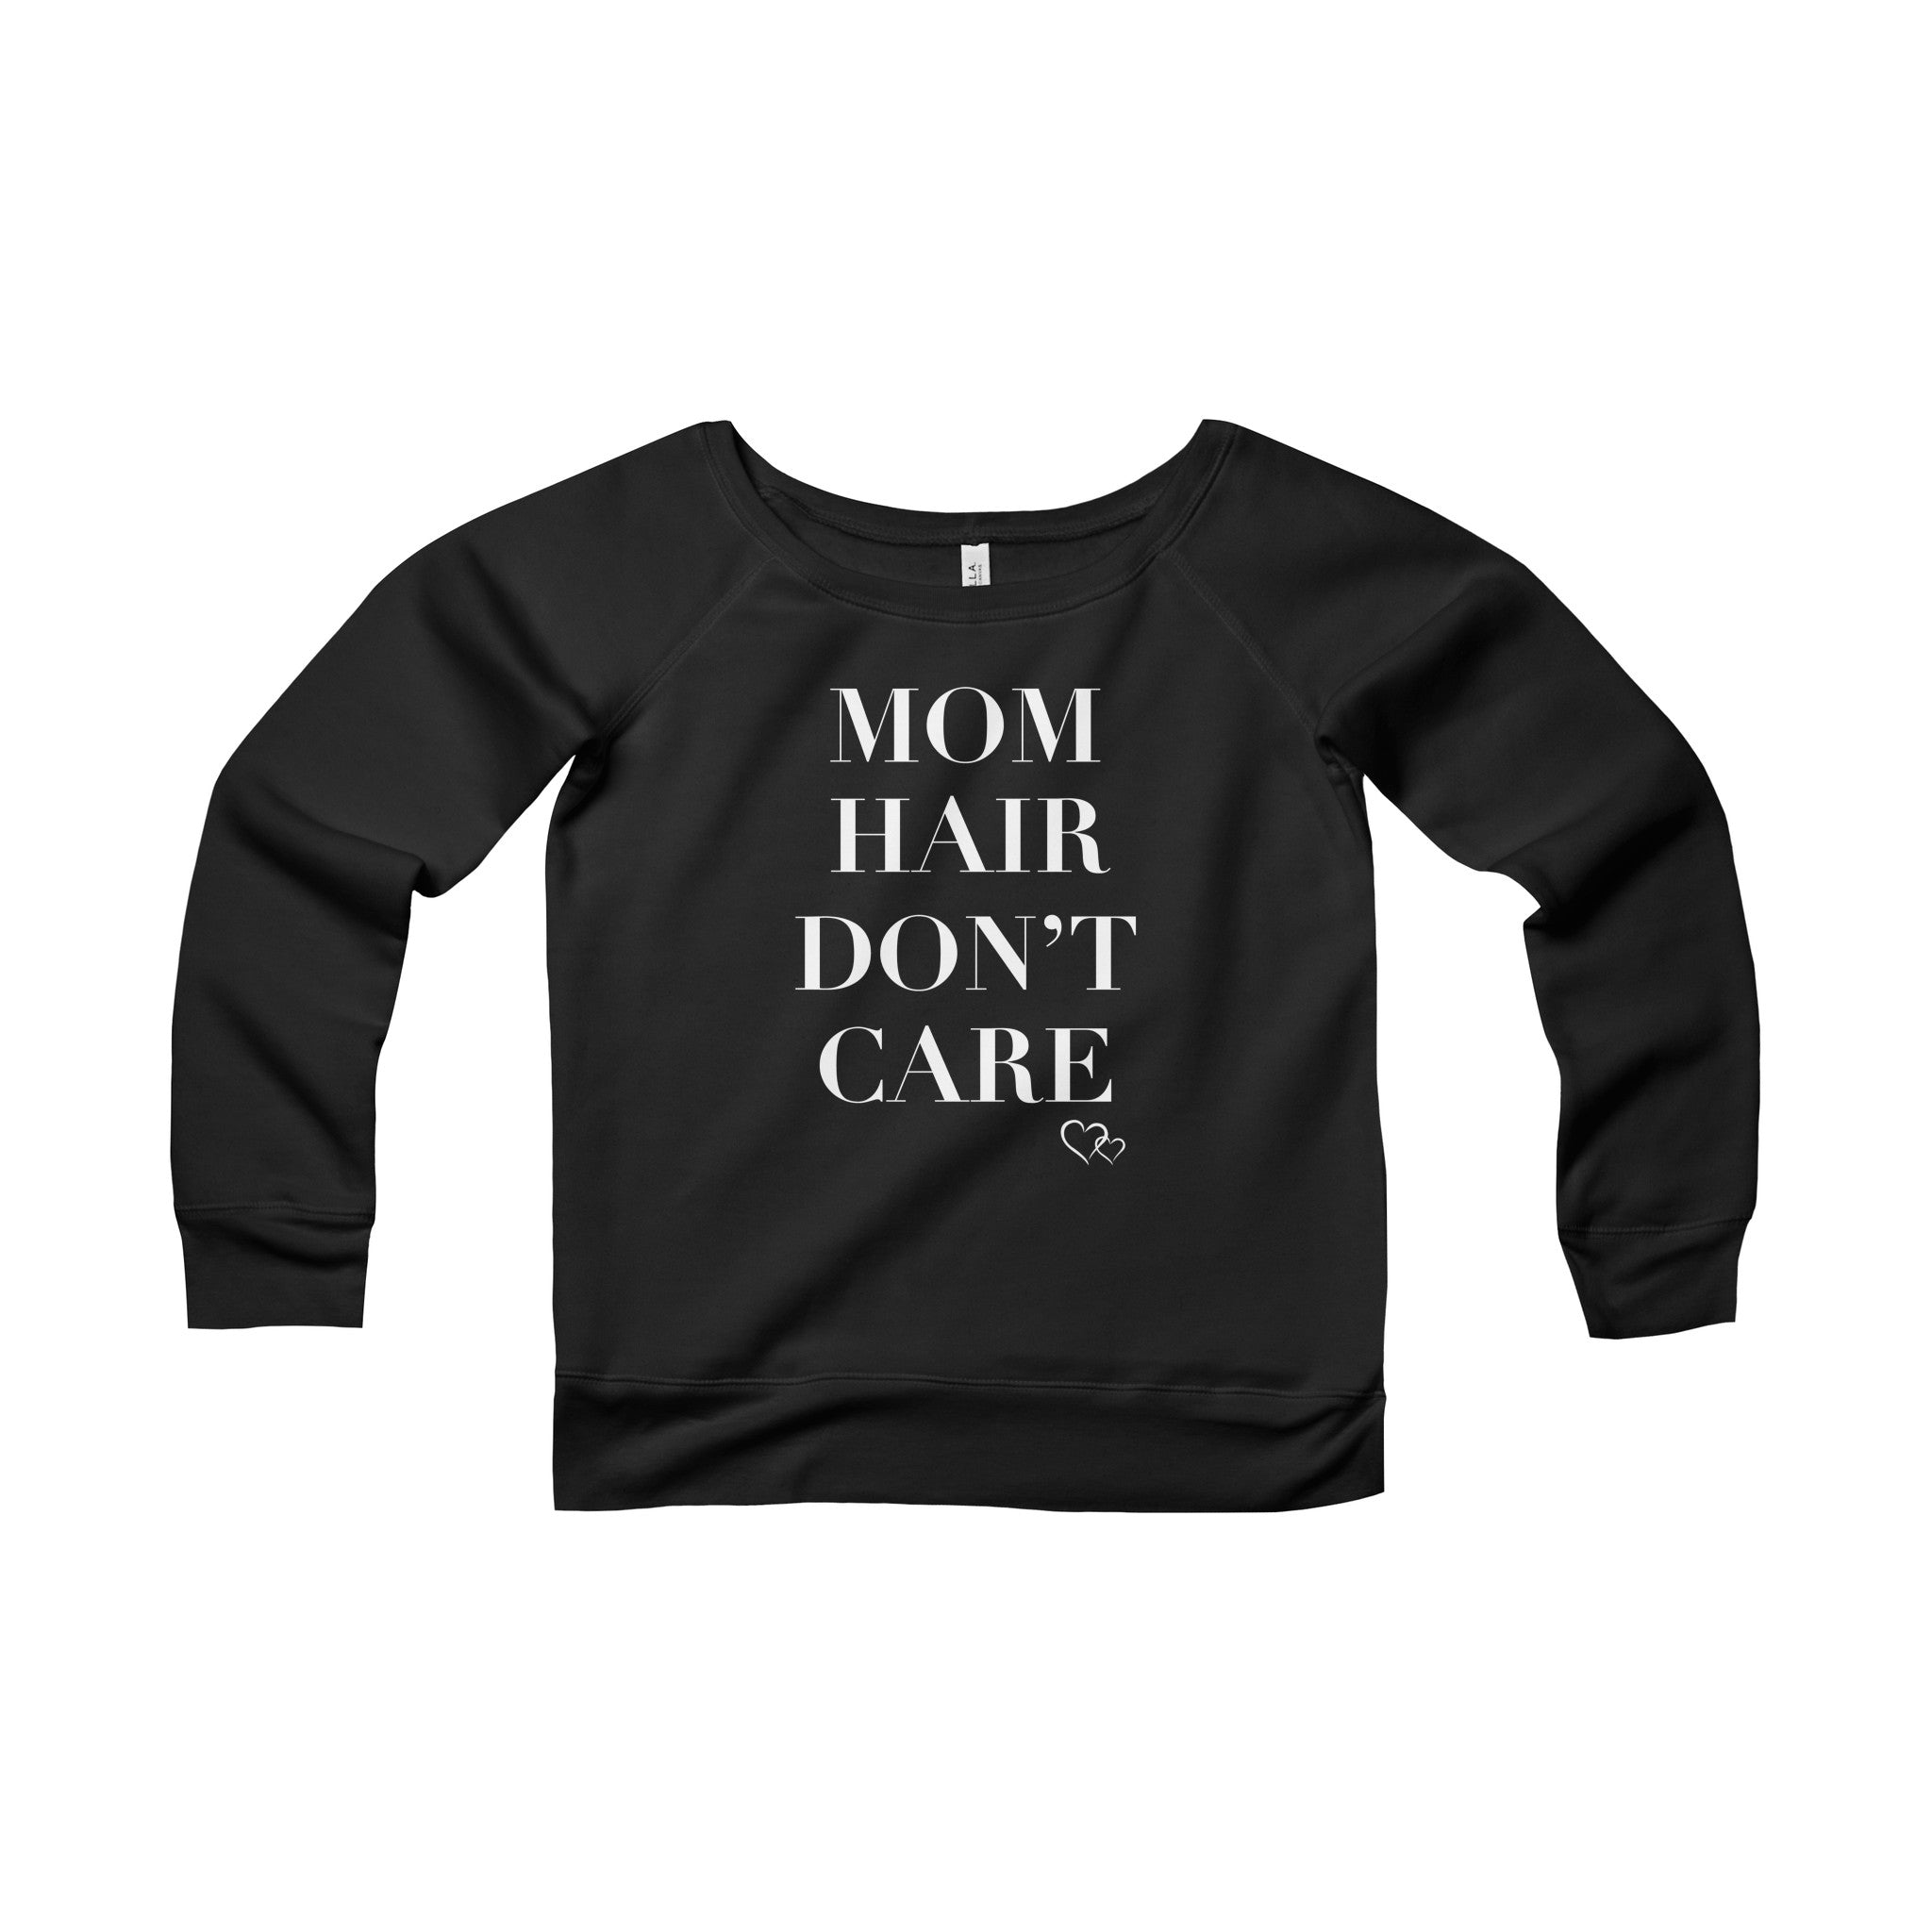 MOM HAIR DON'T CARE - Wide Neck Sweatshirt